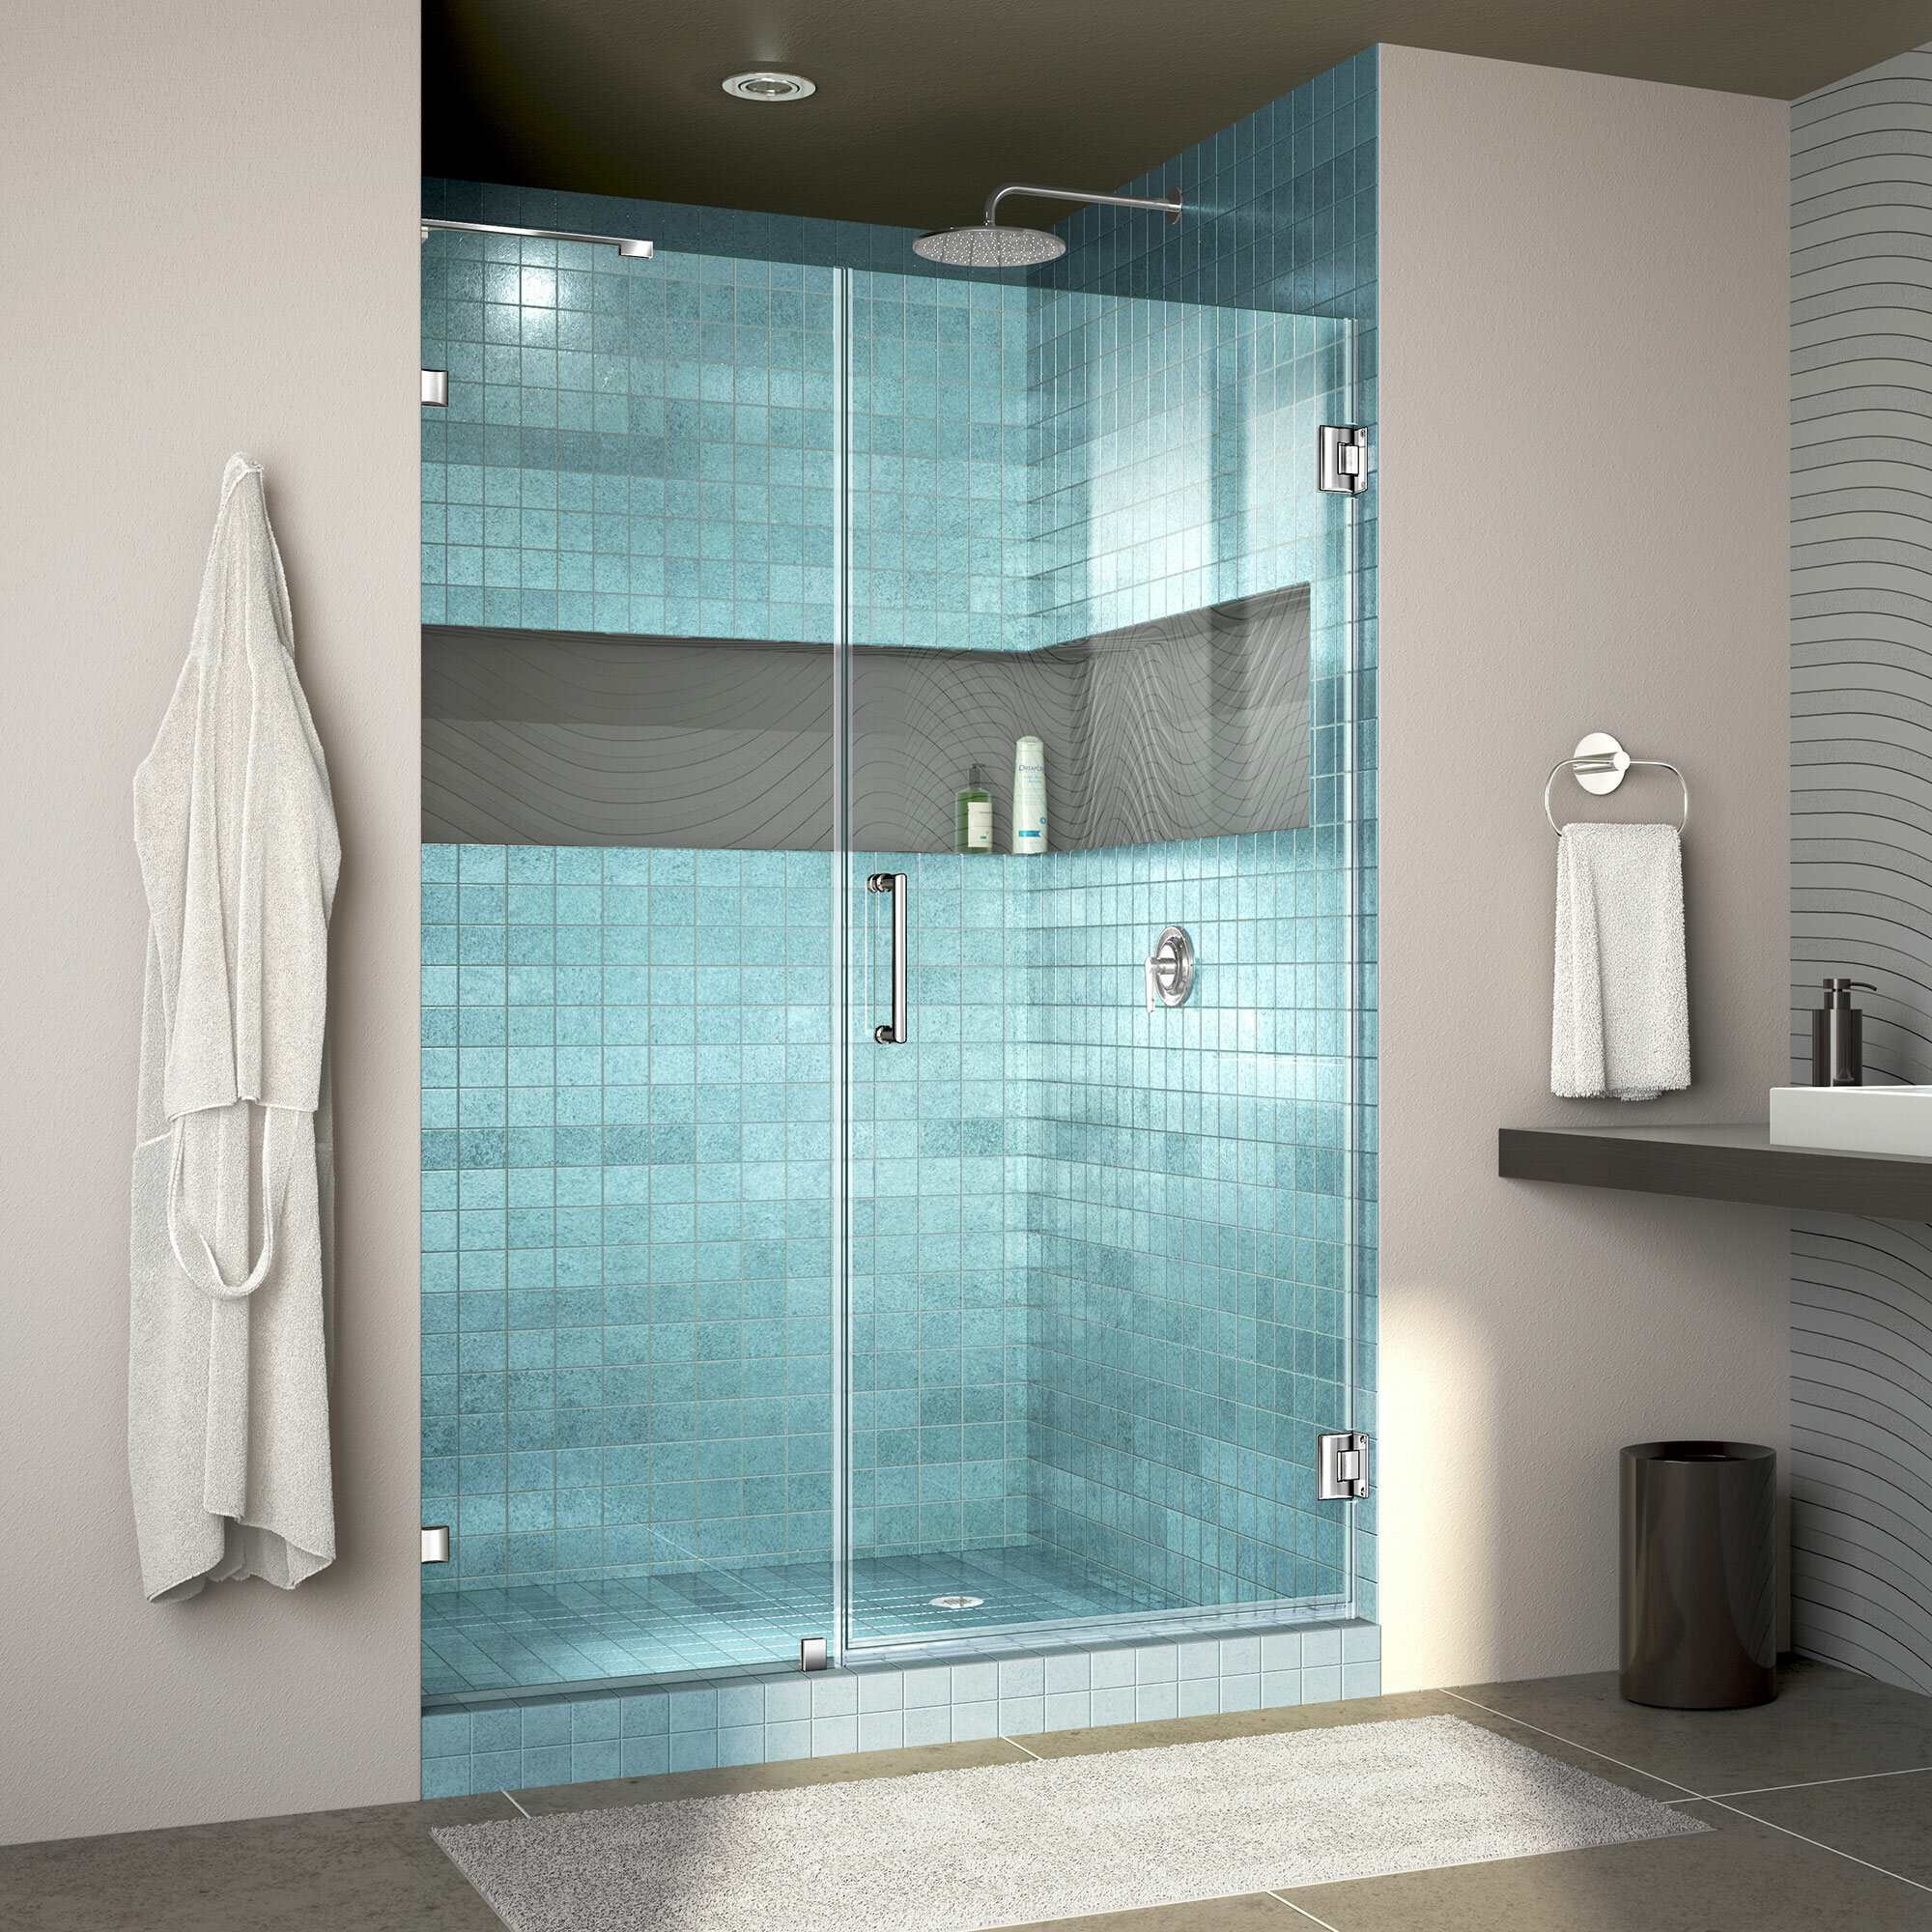 Unidoor Lux 51 X 72 Hinged Frameless Shower Door With Clearmax Technology